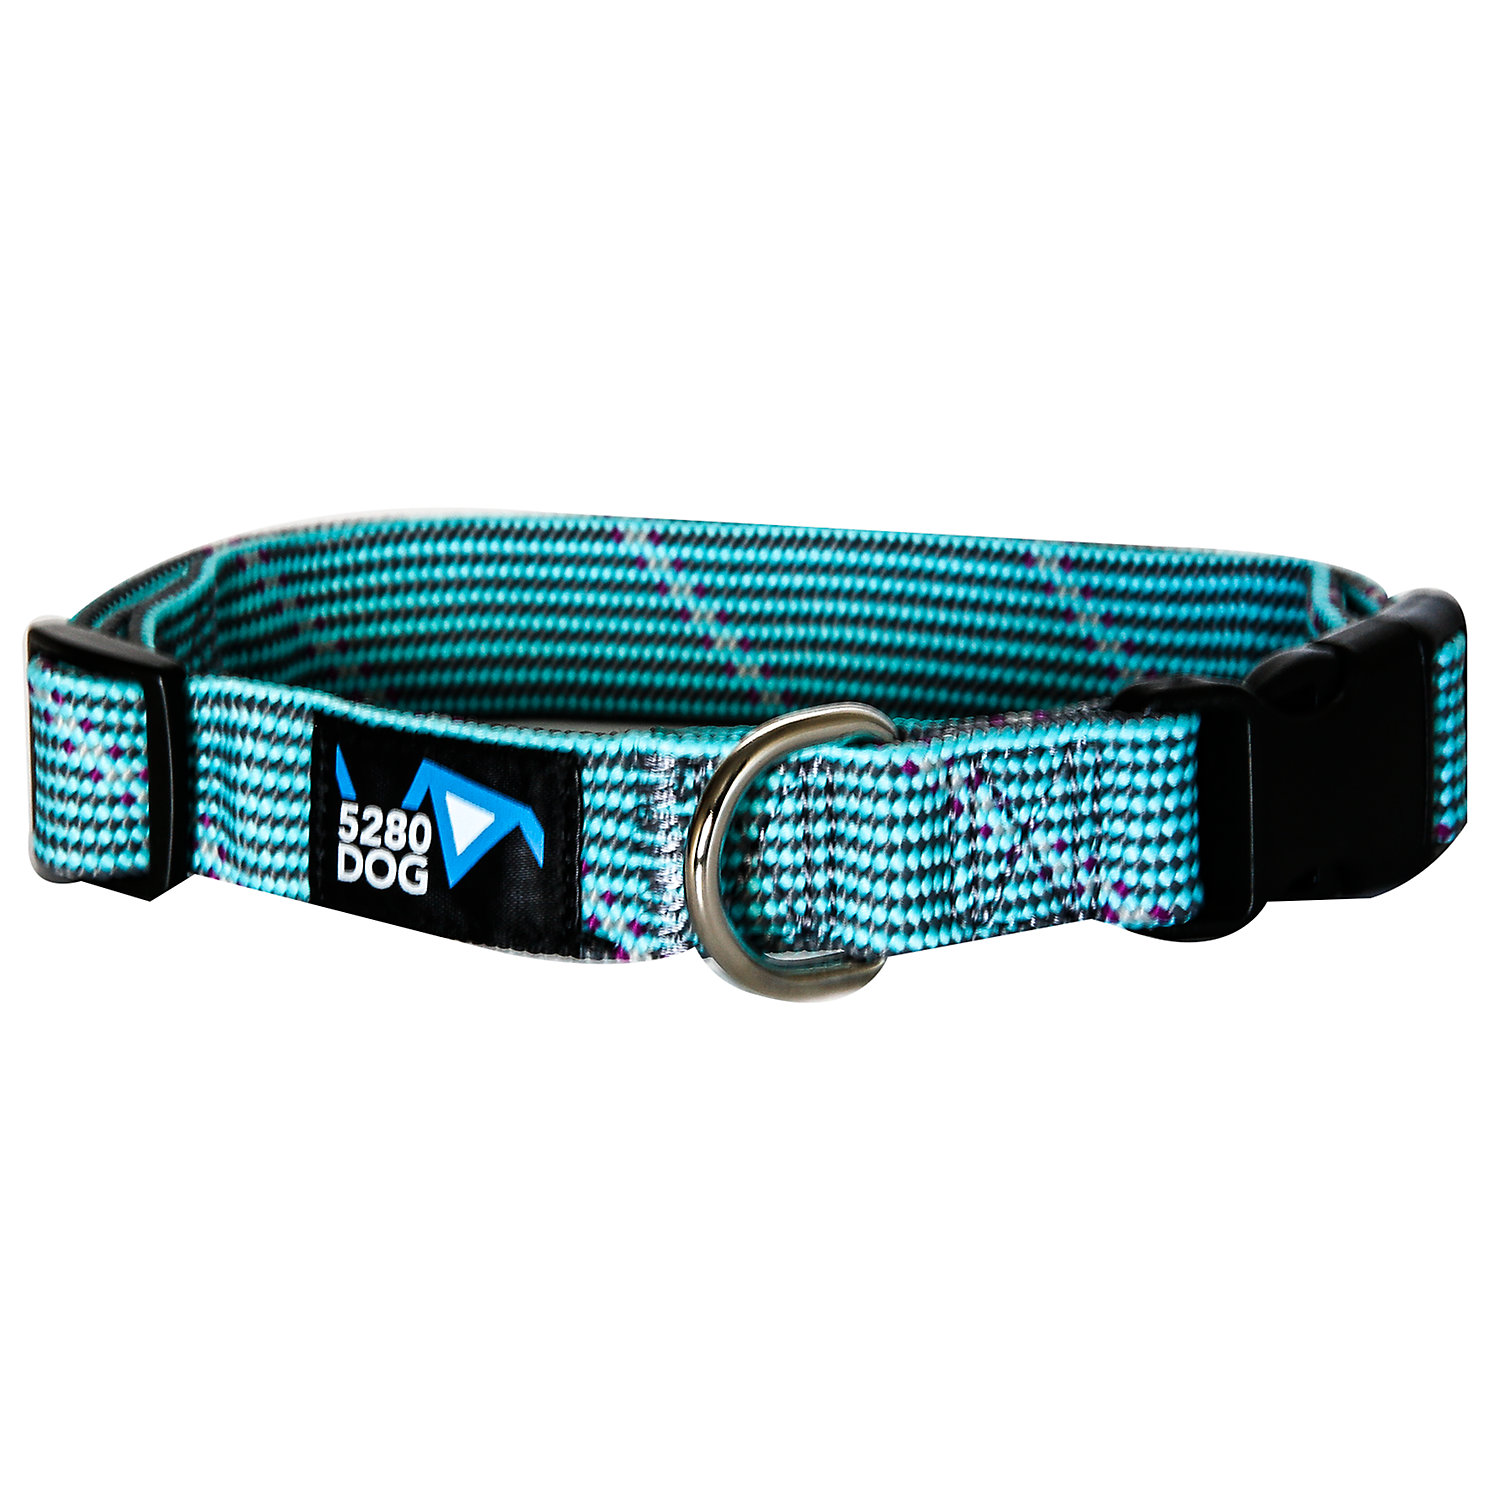 5280DOG Turquoise Braided Collar